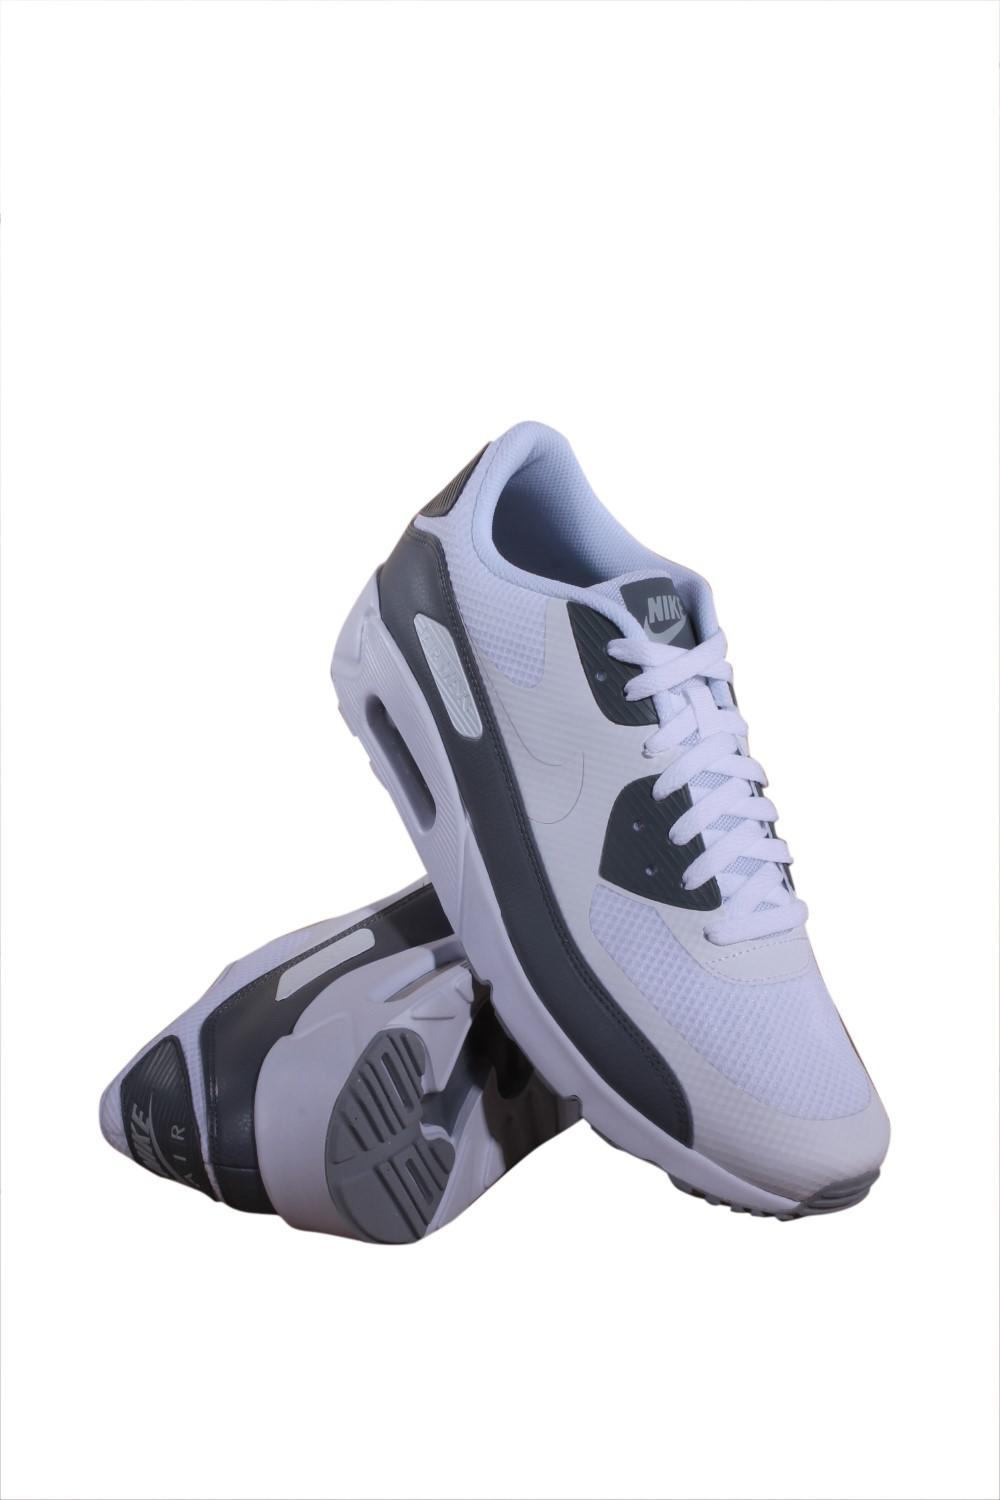 NIKE Men's Air Max 90 Ultra 2.0 Essential WhiteWhite Cool Grey Running Shoe 11 Men US